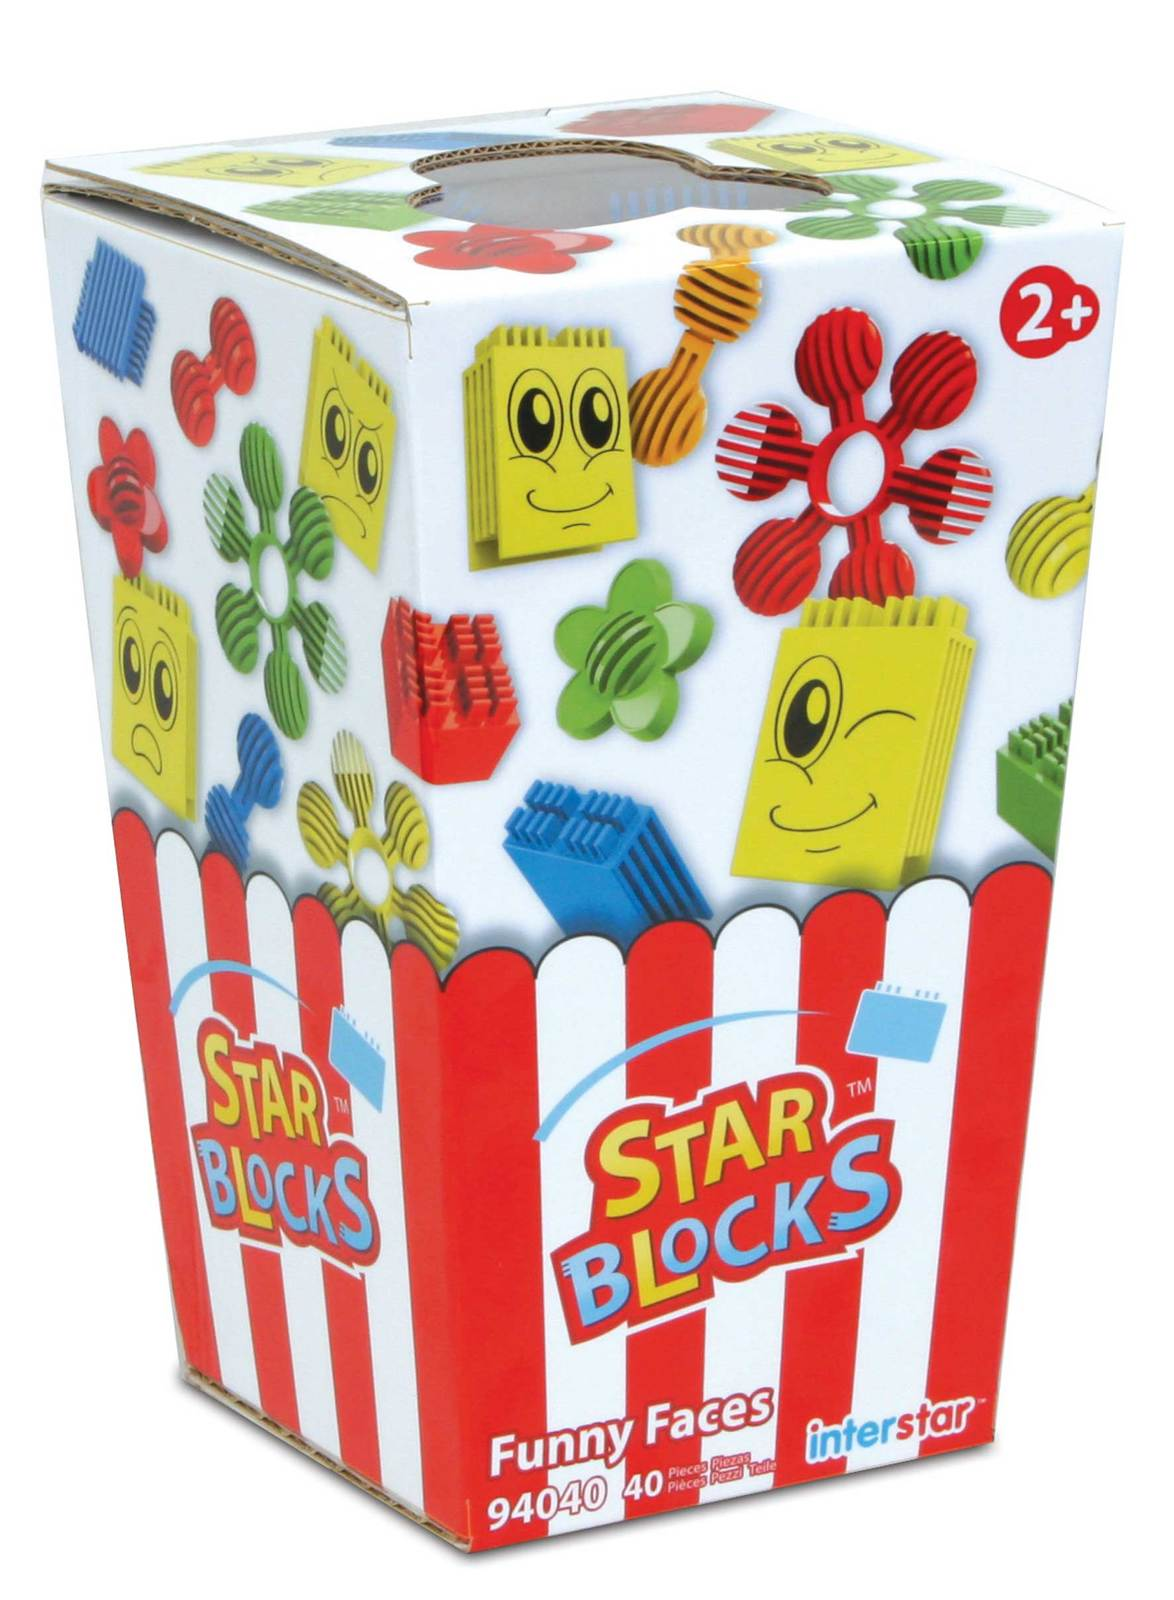 Interstar Construction - Star Blocks - Popcorn Set - 40 pc